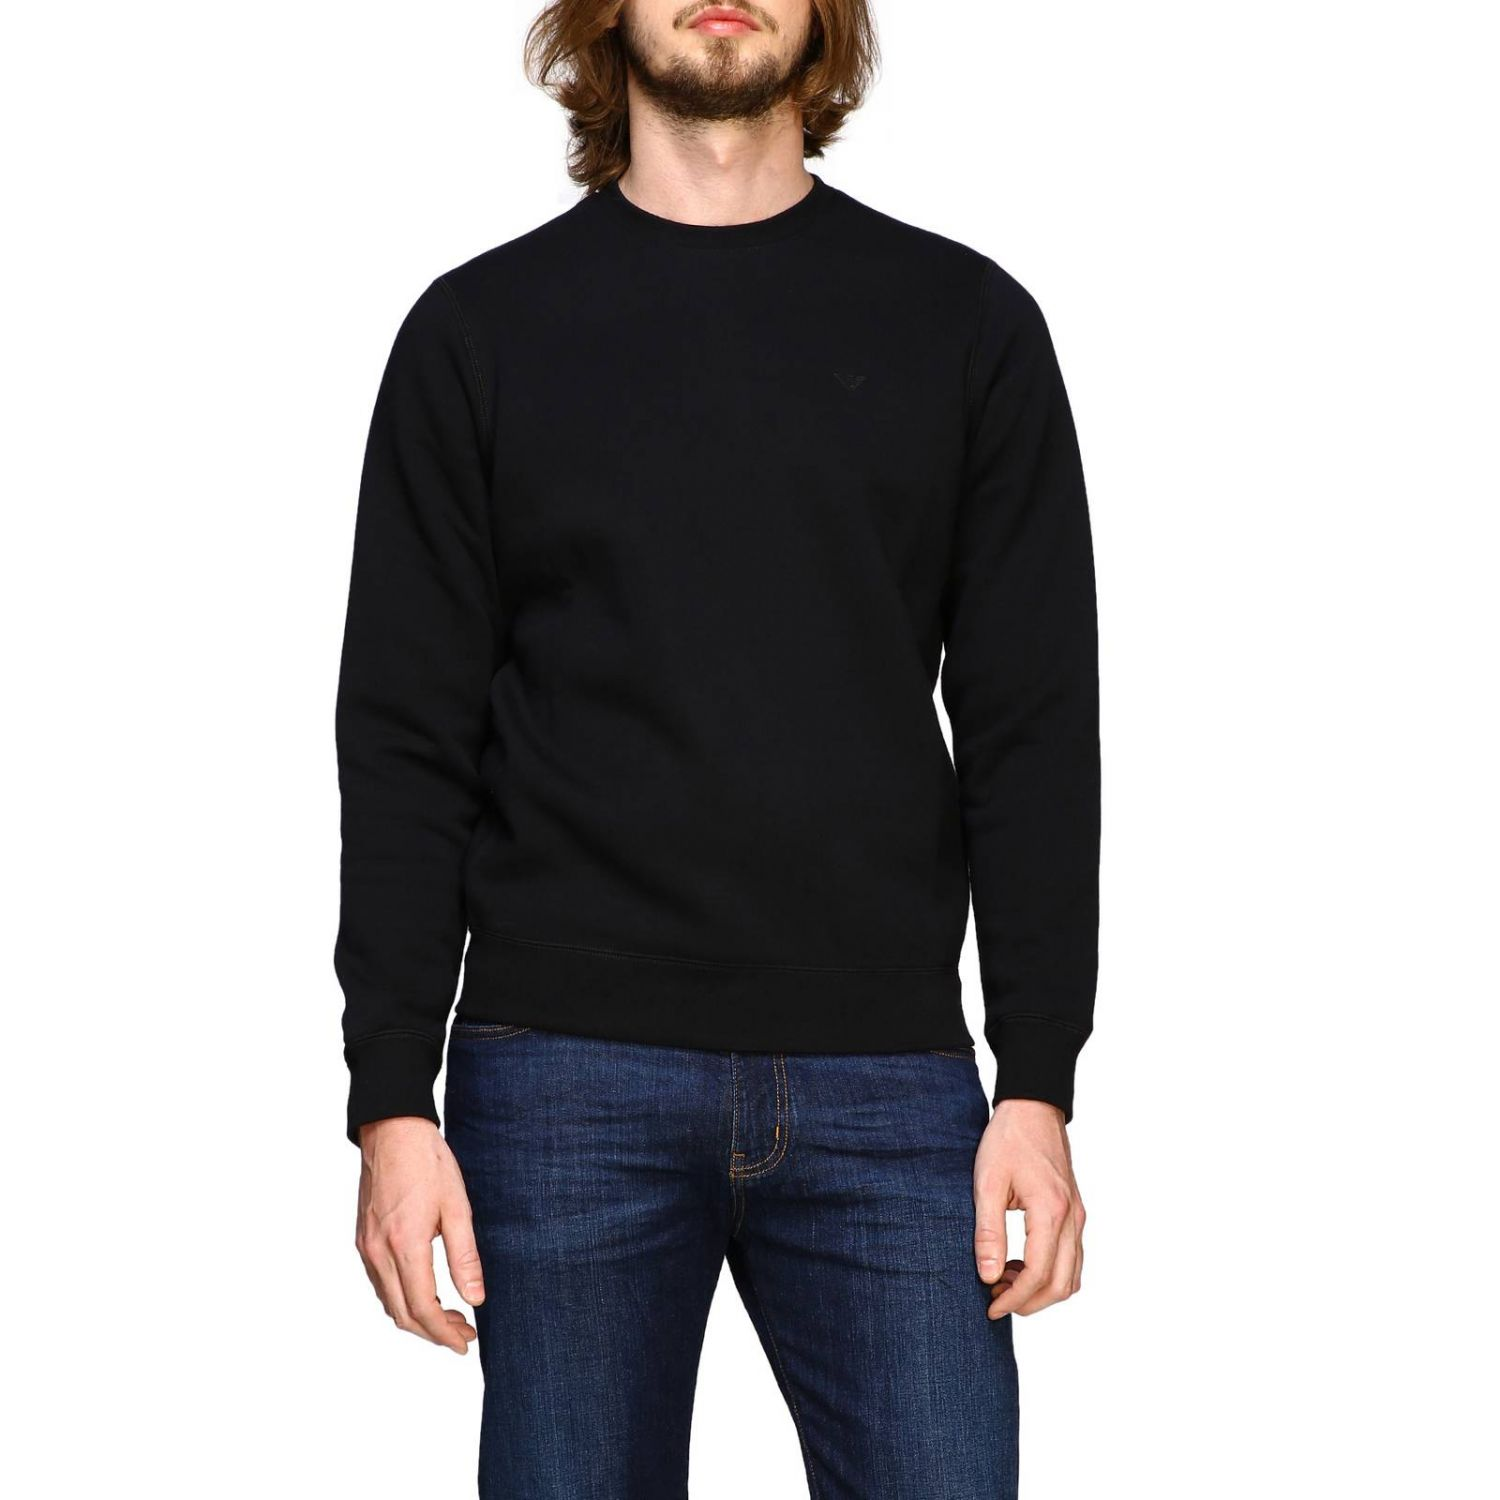 Sweater men Emporio Armani black 1